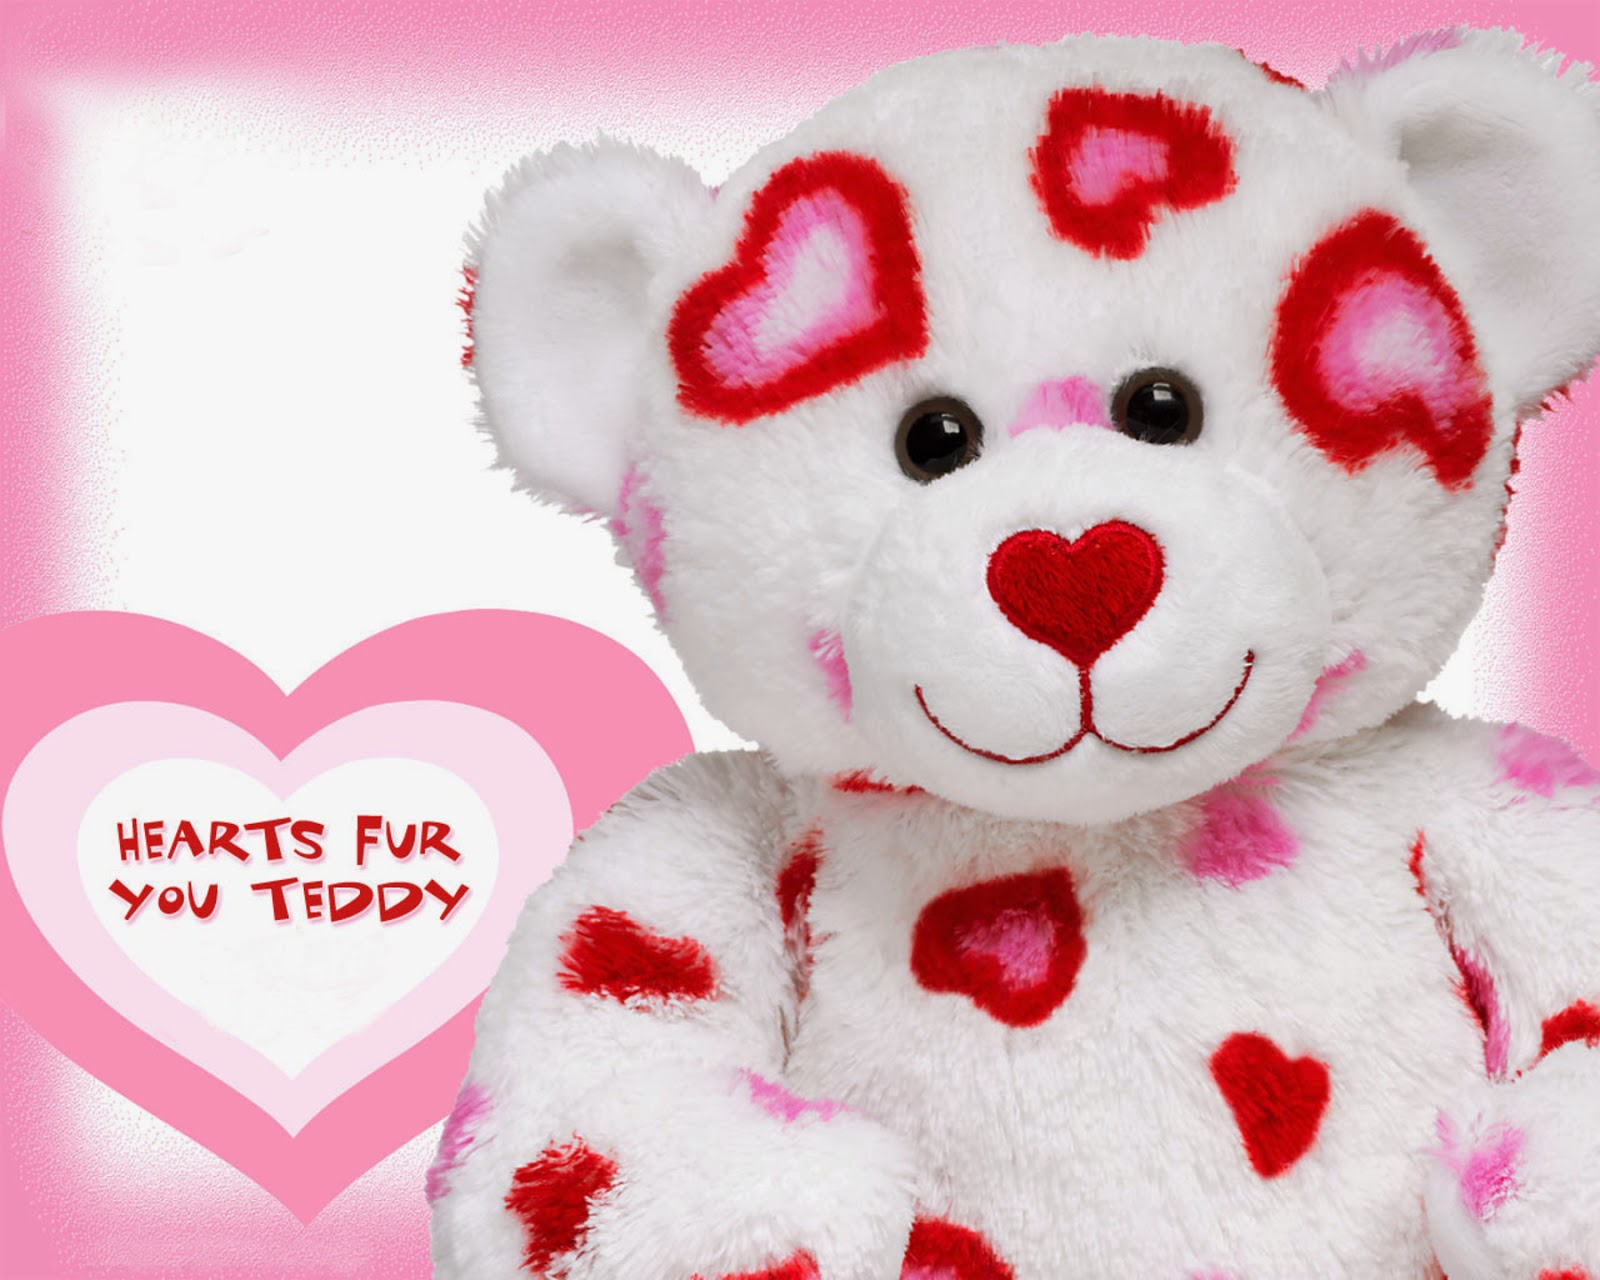 teddy bear hd wallpaper - wallpapers